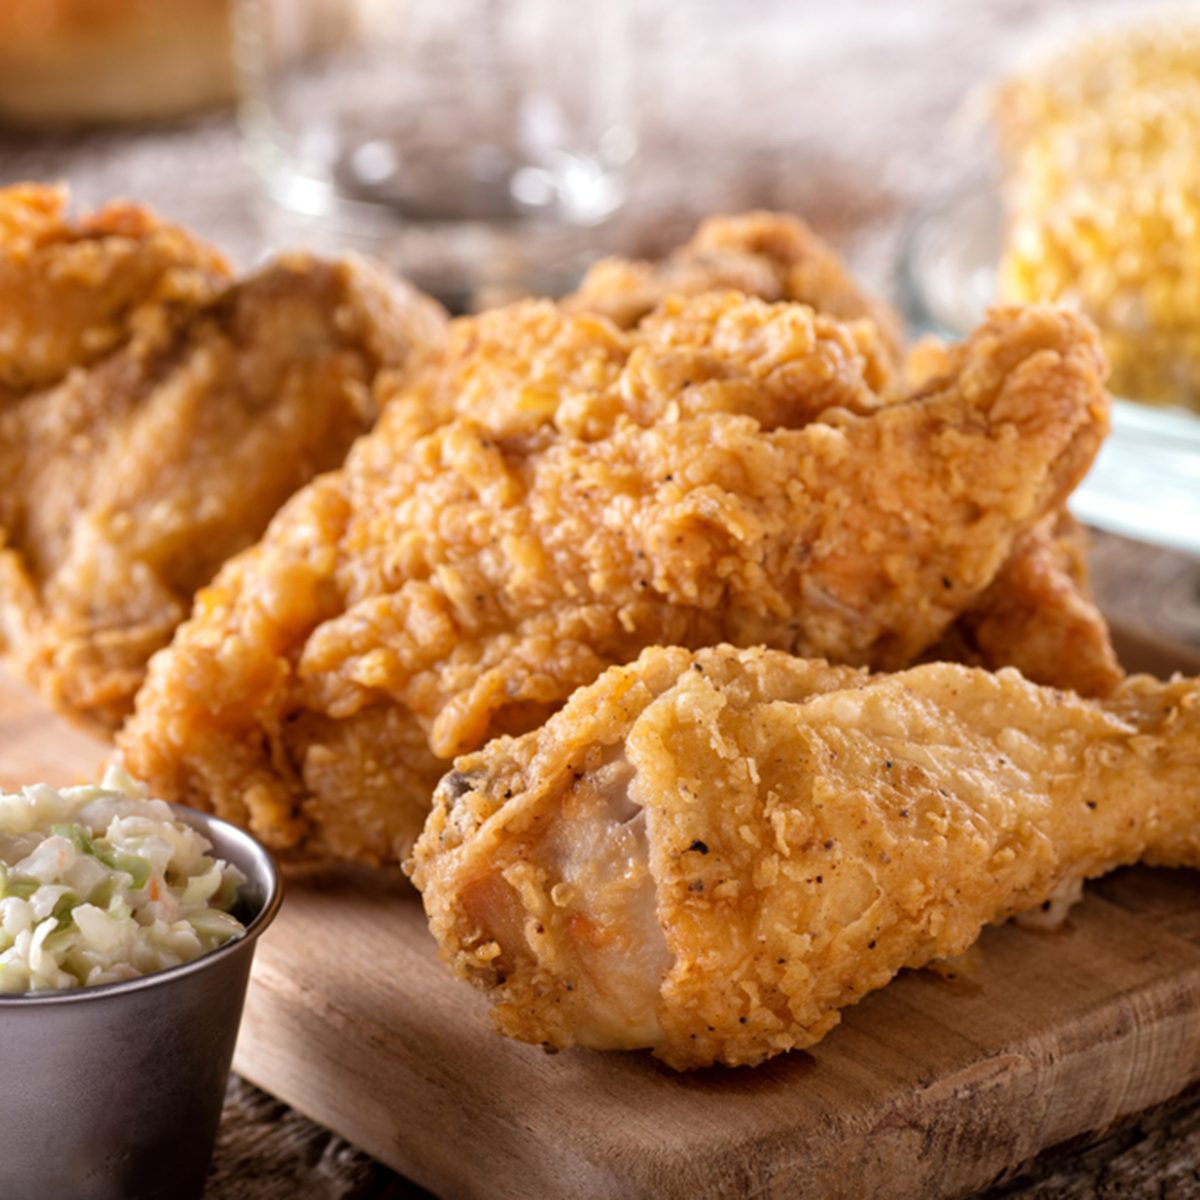 Delicious crispy fried chicken with coleslaw and corn on the cob.; Shutterstock ID 1145667110; Job (TFH, TOH, RD, BNB, CWM, CM): TOH